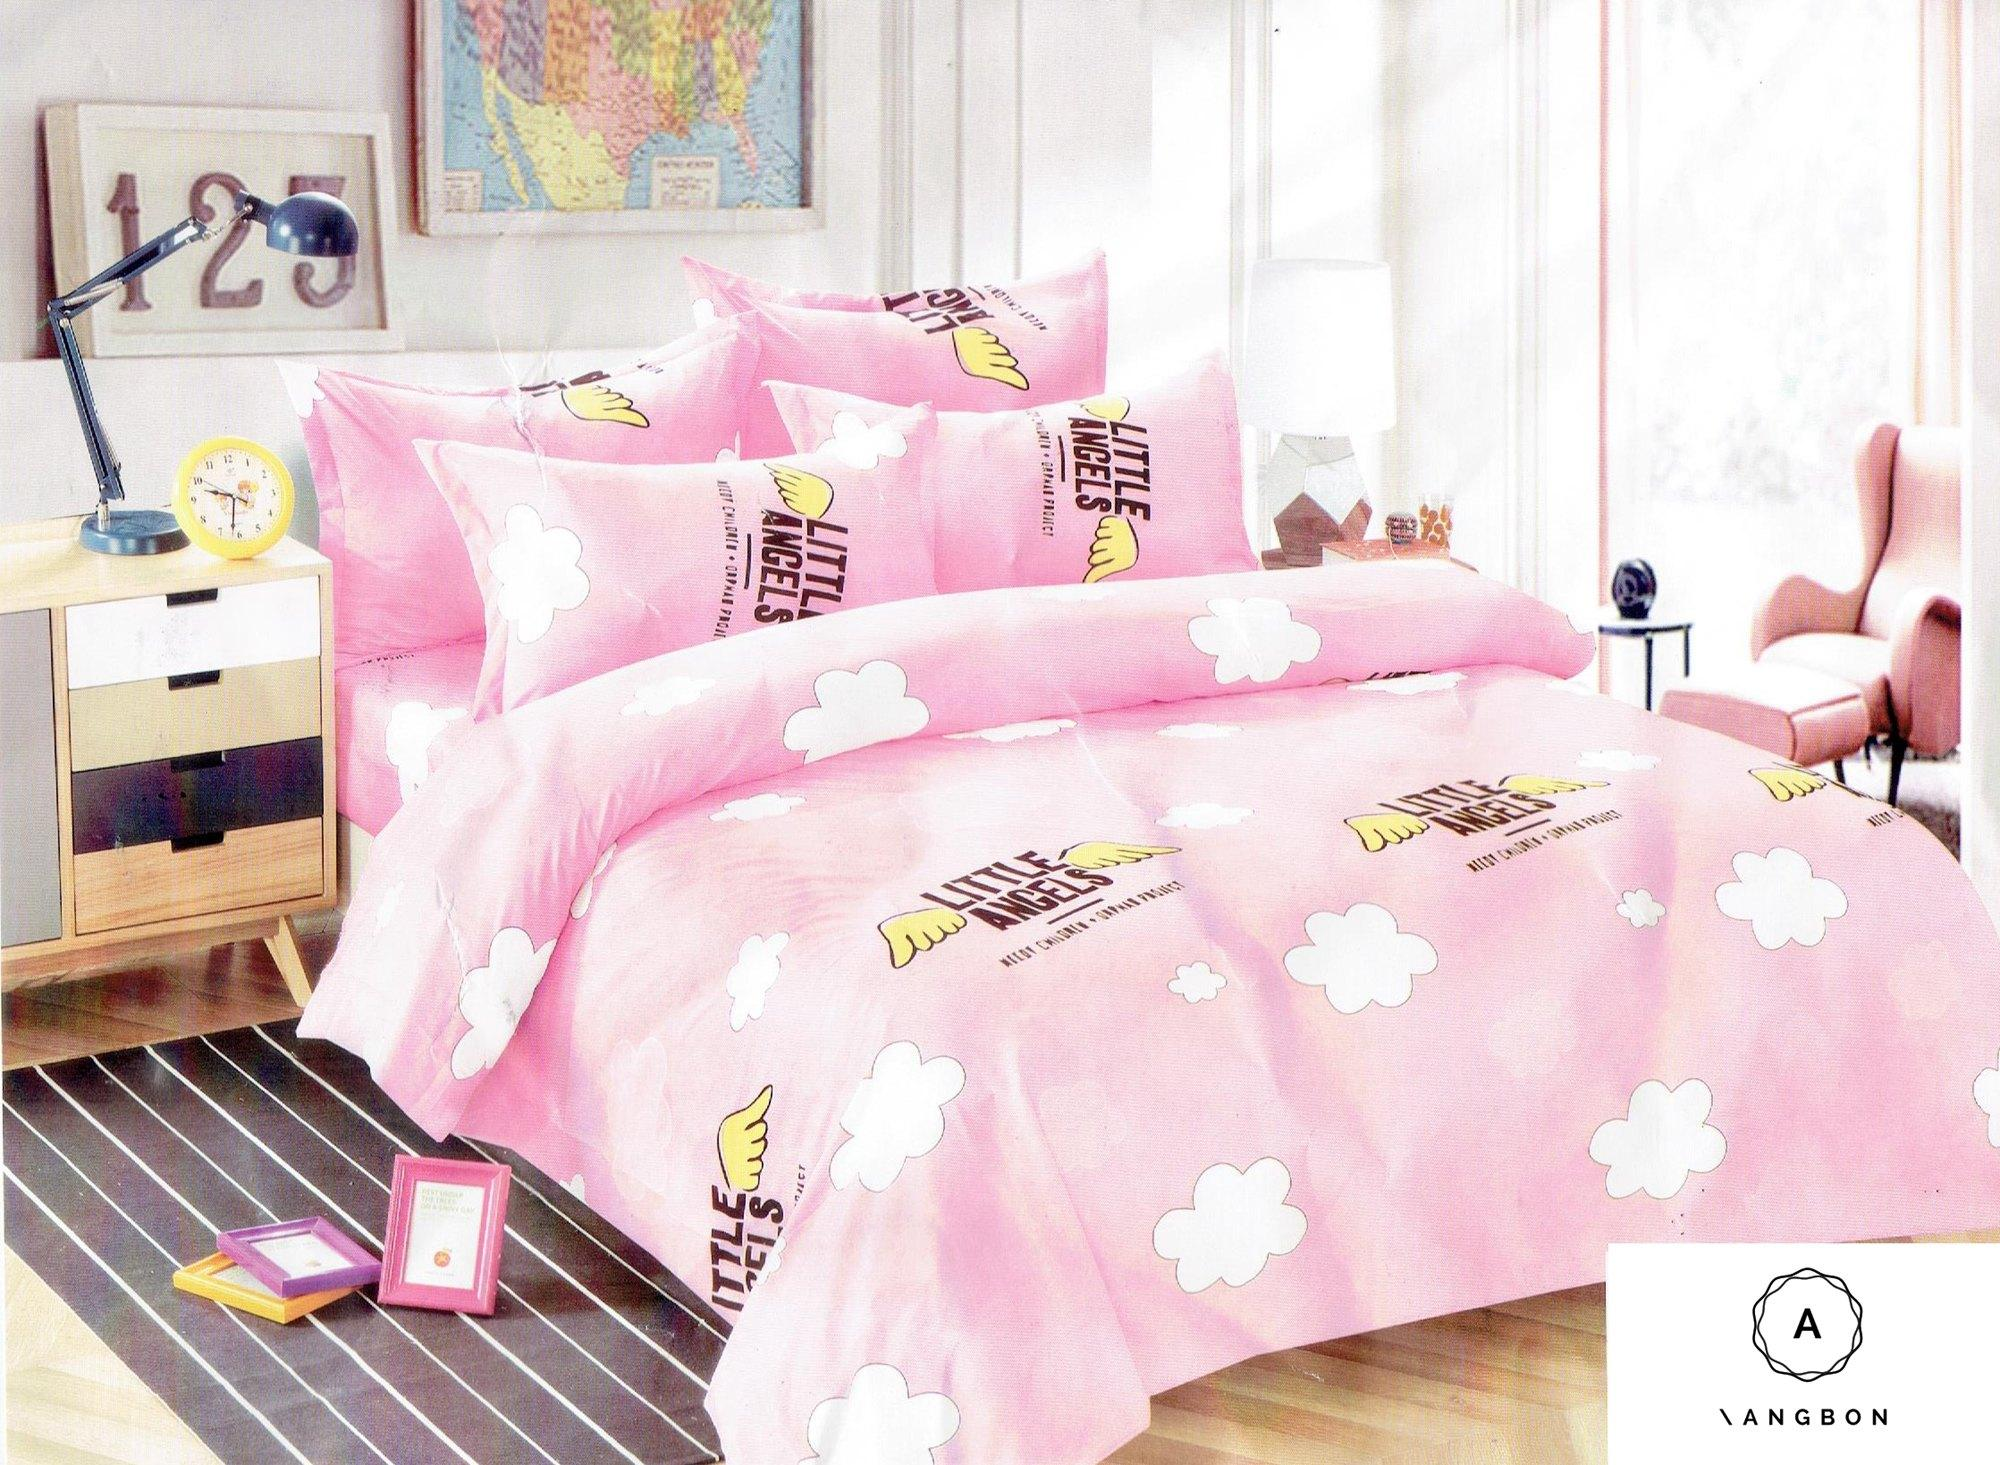 Bed Sheet For Sale Bed Covers Prices Brands Review In